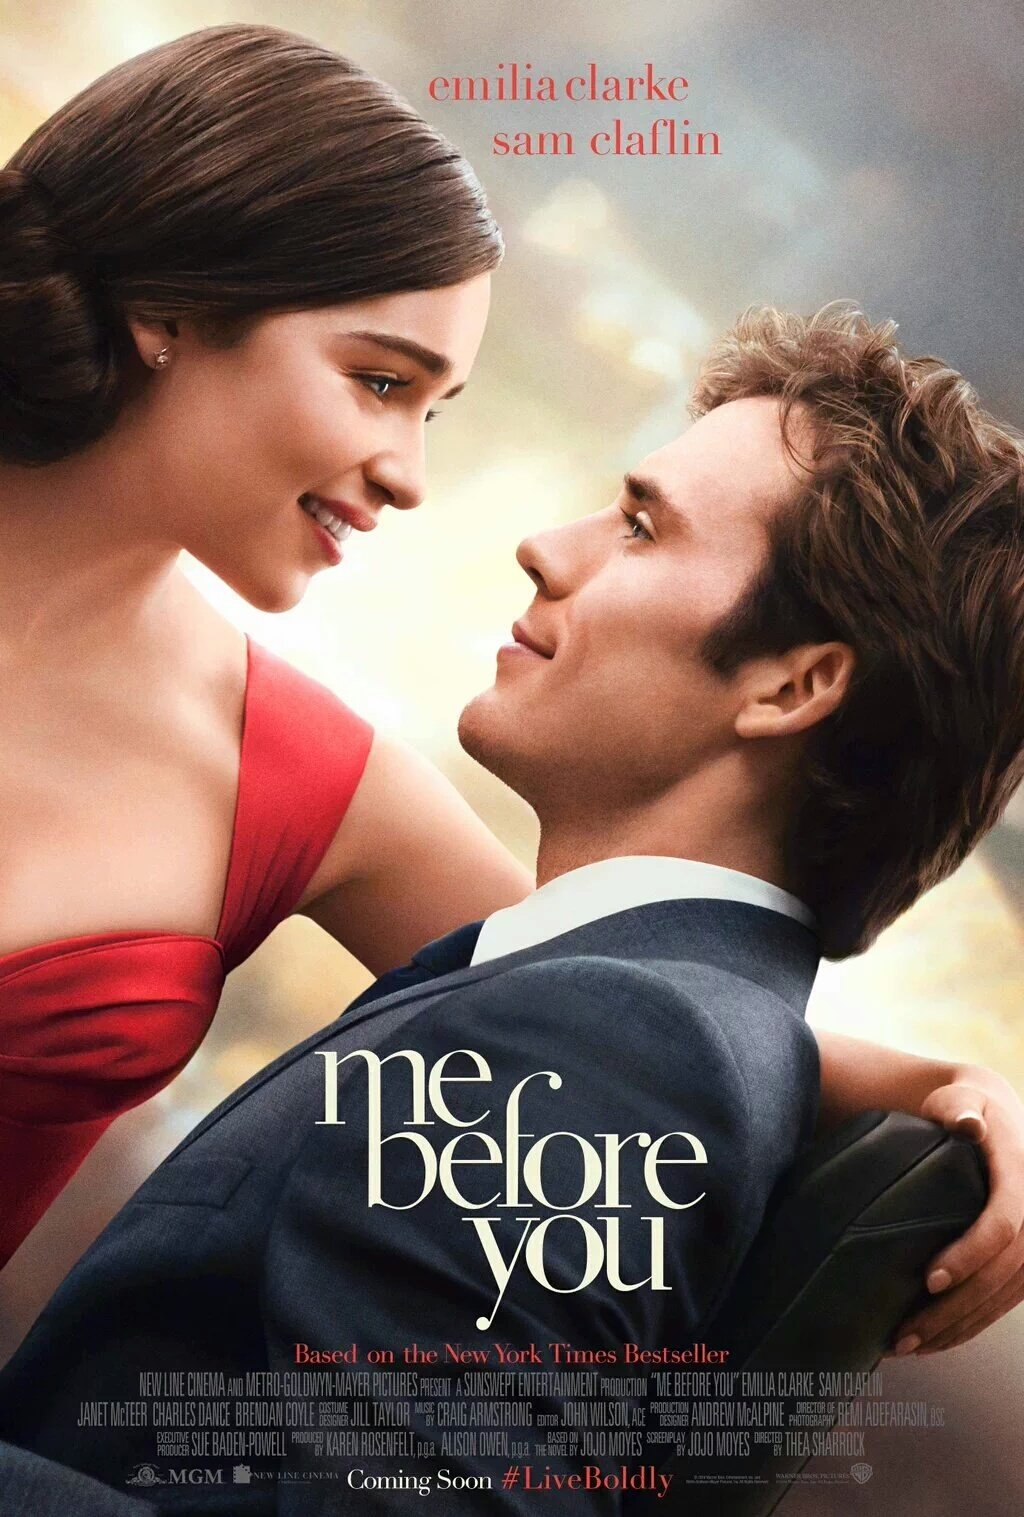 New 'Me Before You' Trailer Featuring Emilia Clarke & Sam Claflin 1